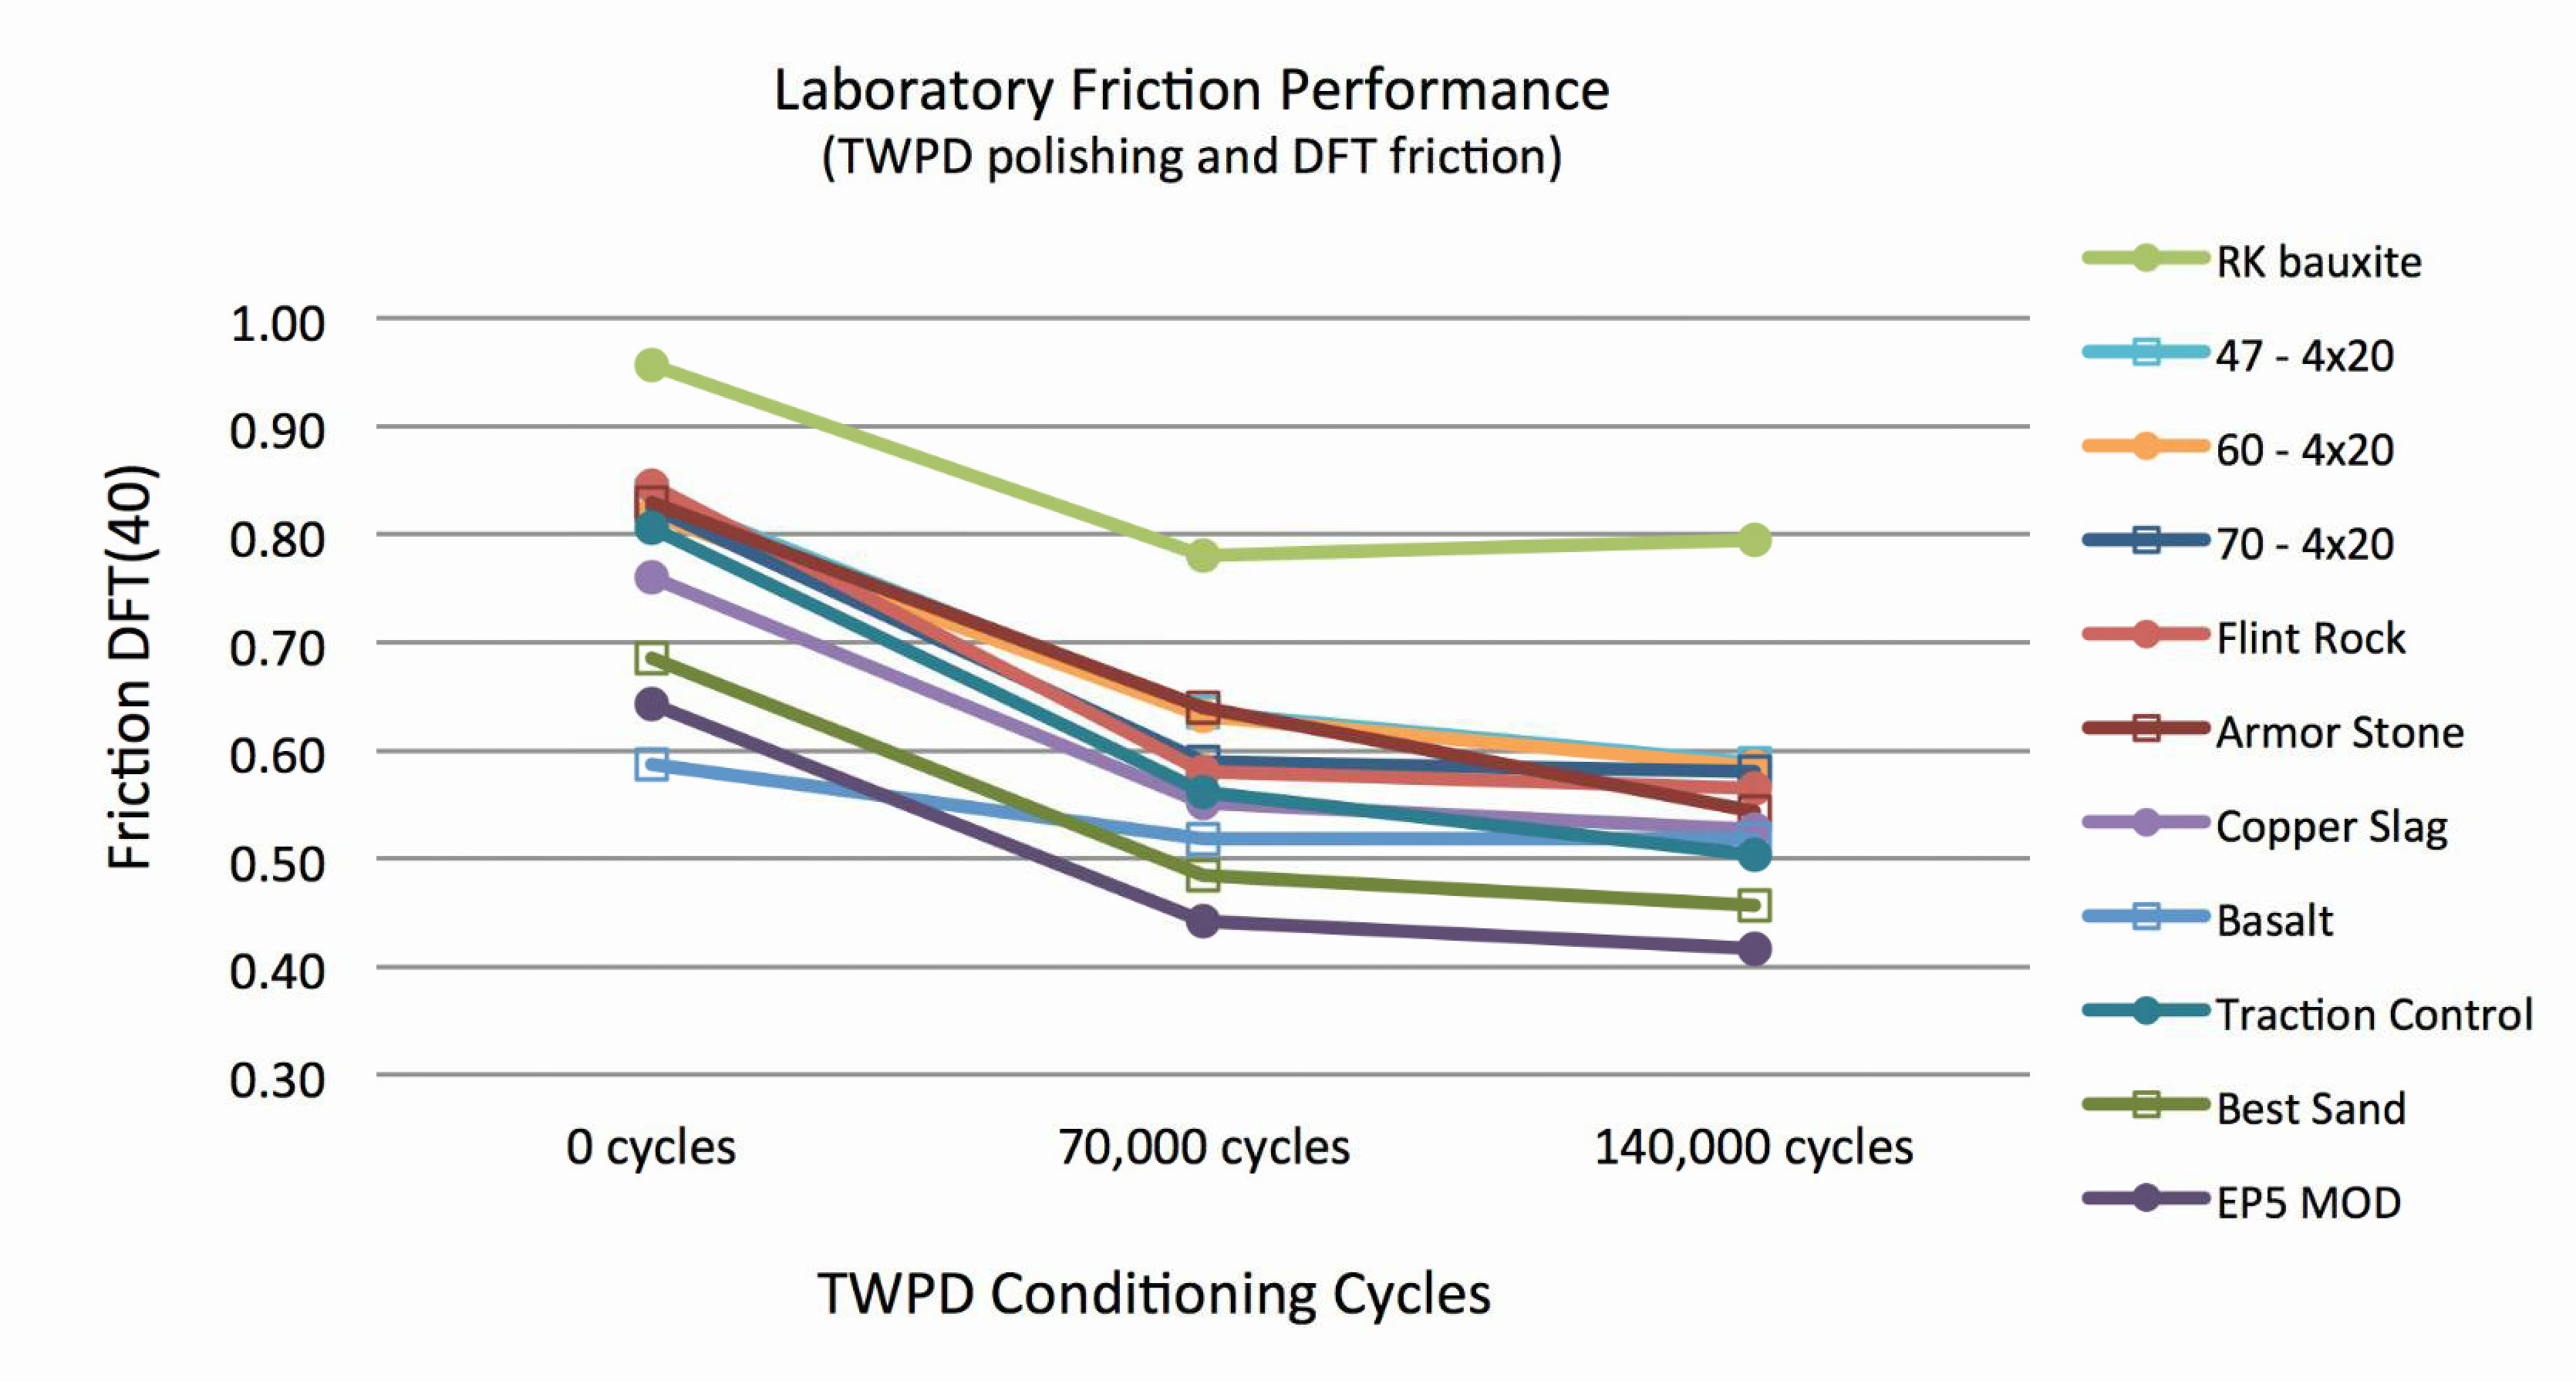 Figure 1. Comparison of Lab Friction Performance